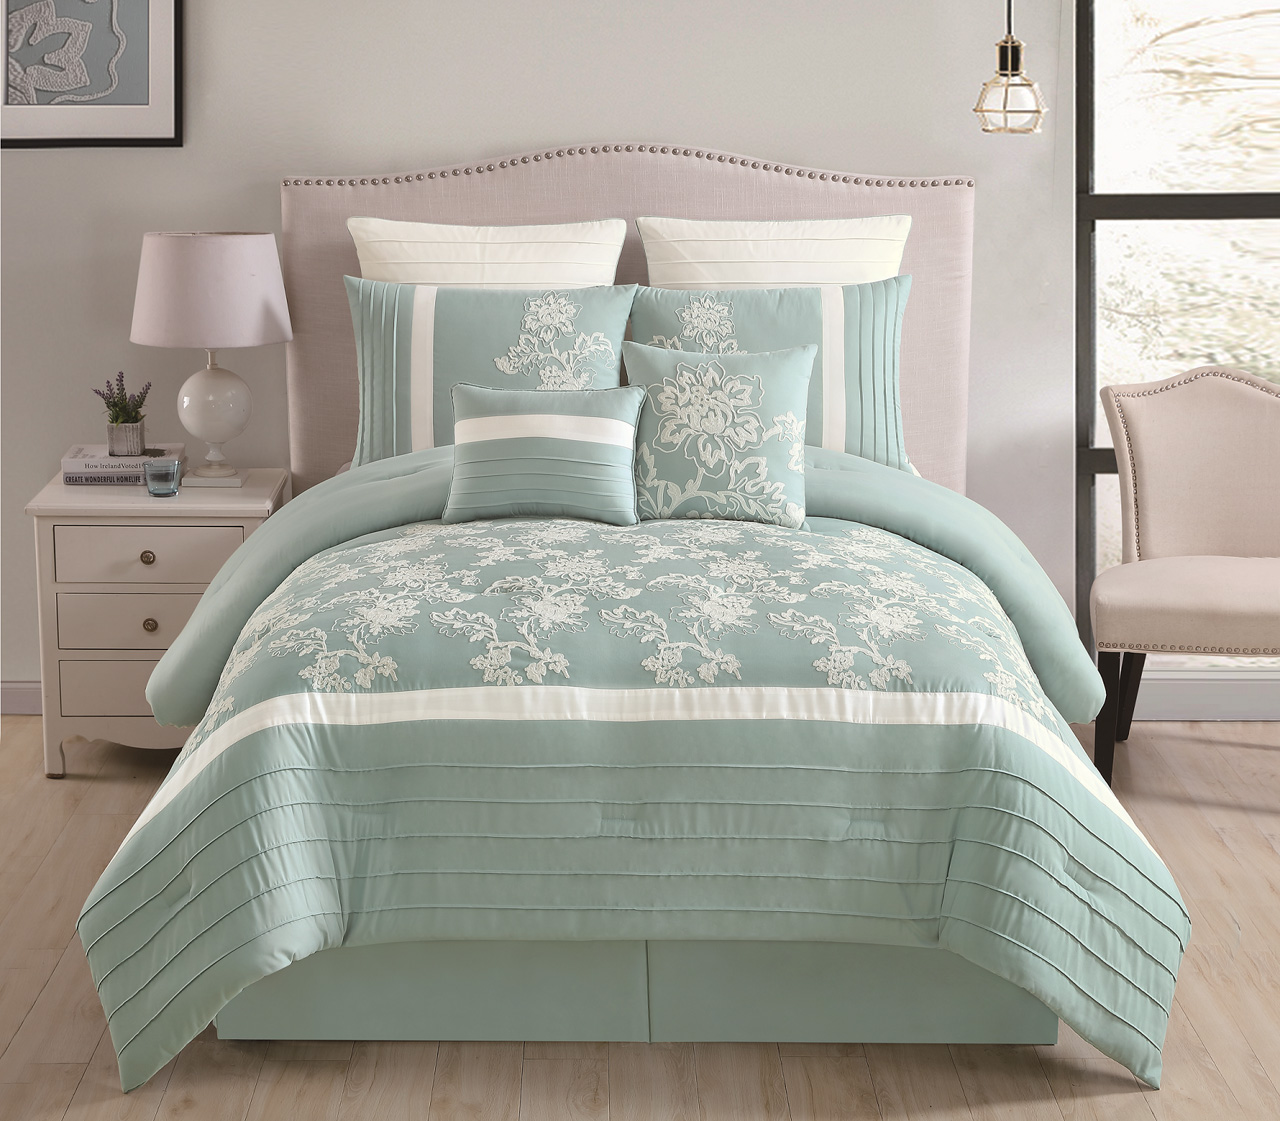 12 Piece Maris Aqua Bed In A Bag Set